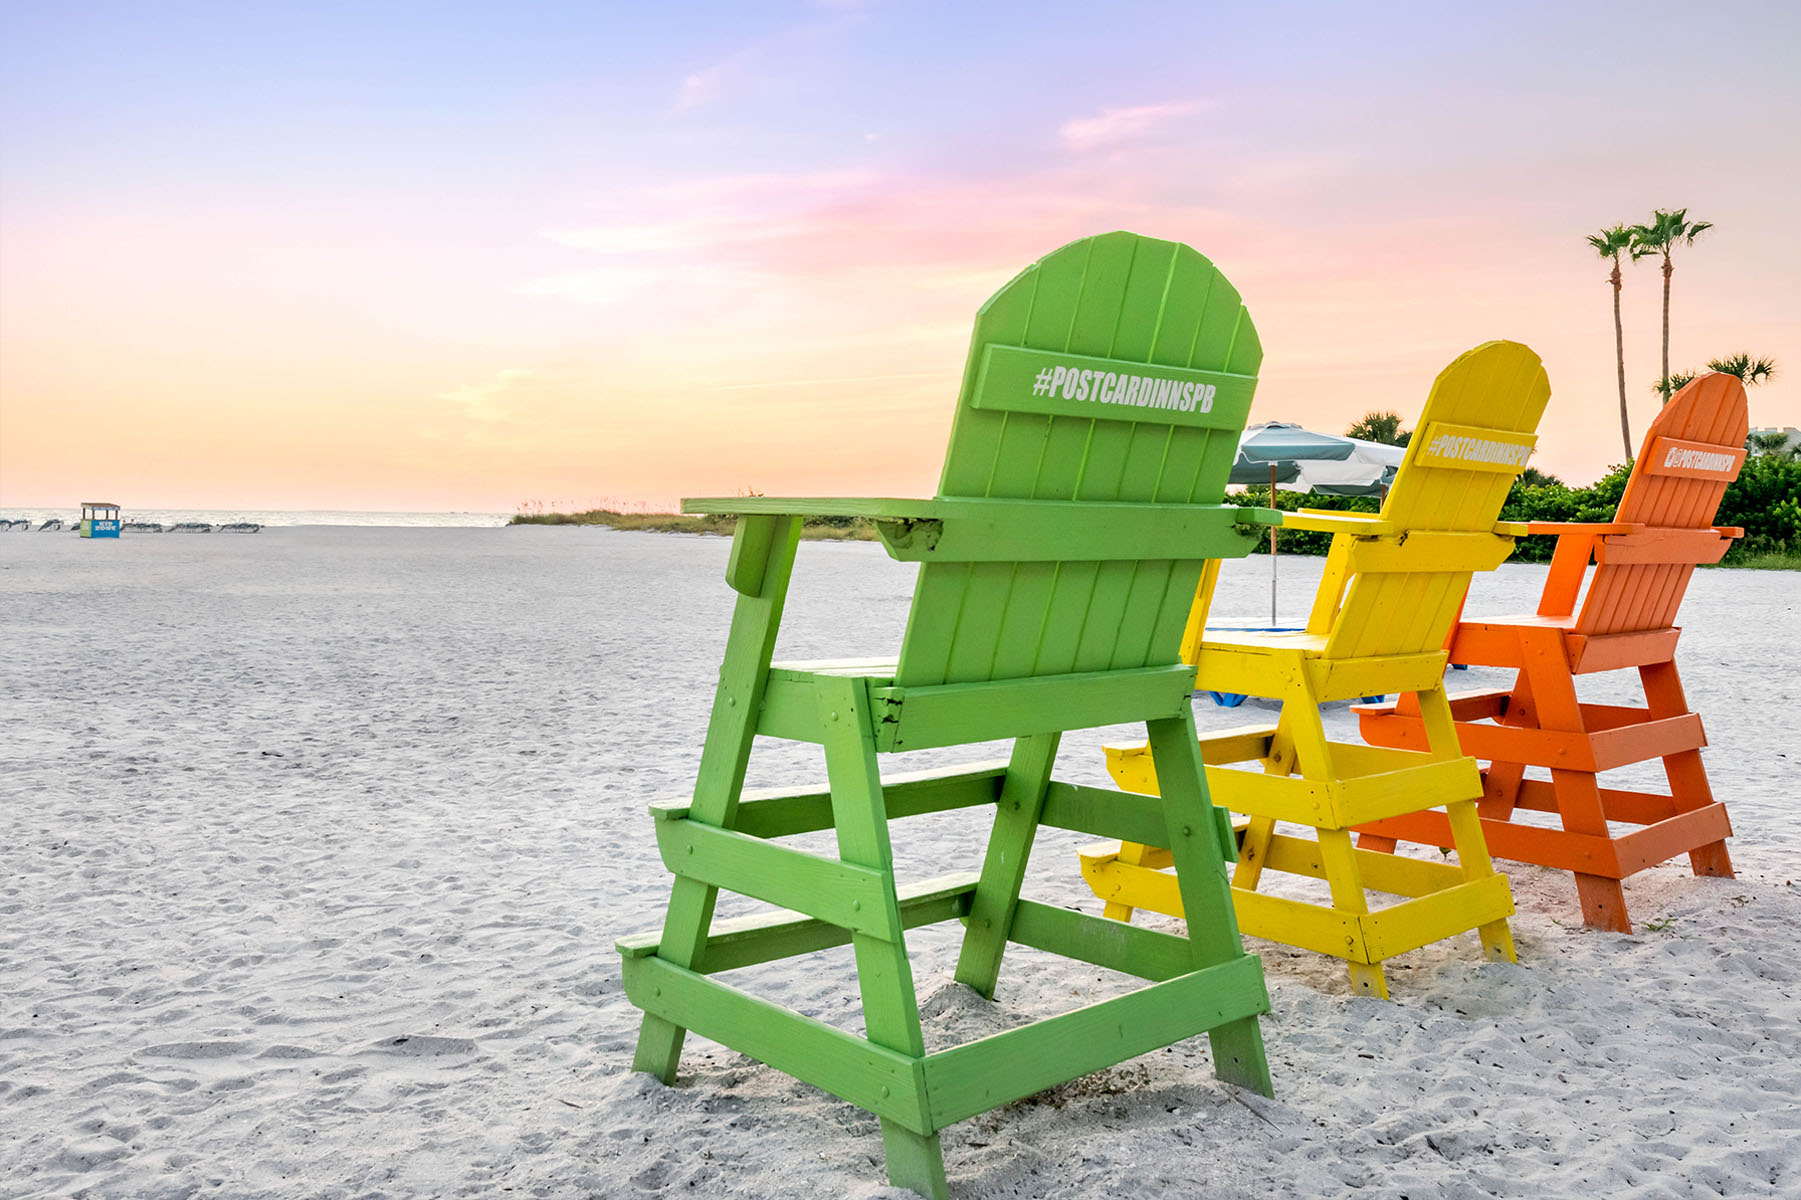 Colorful Wooden Postcard Inn Chairs in the Sand on the Beach